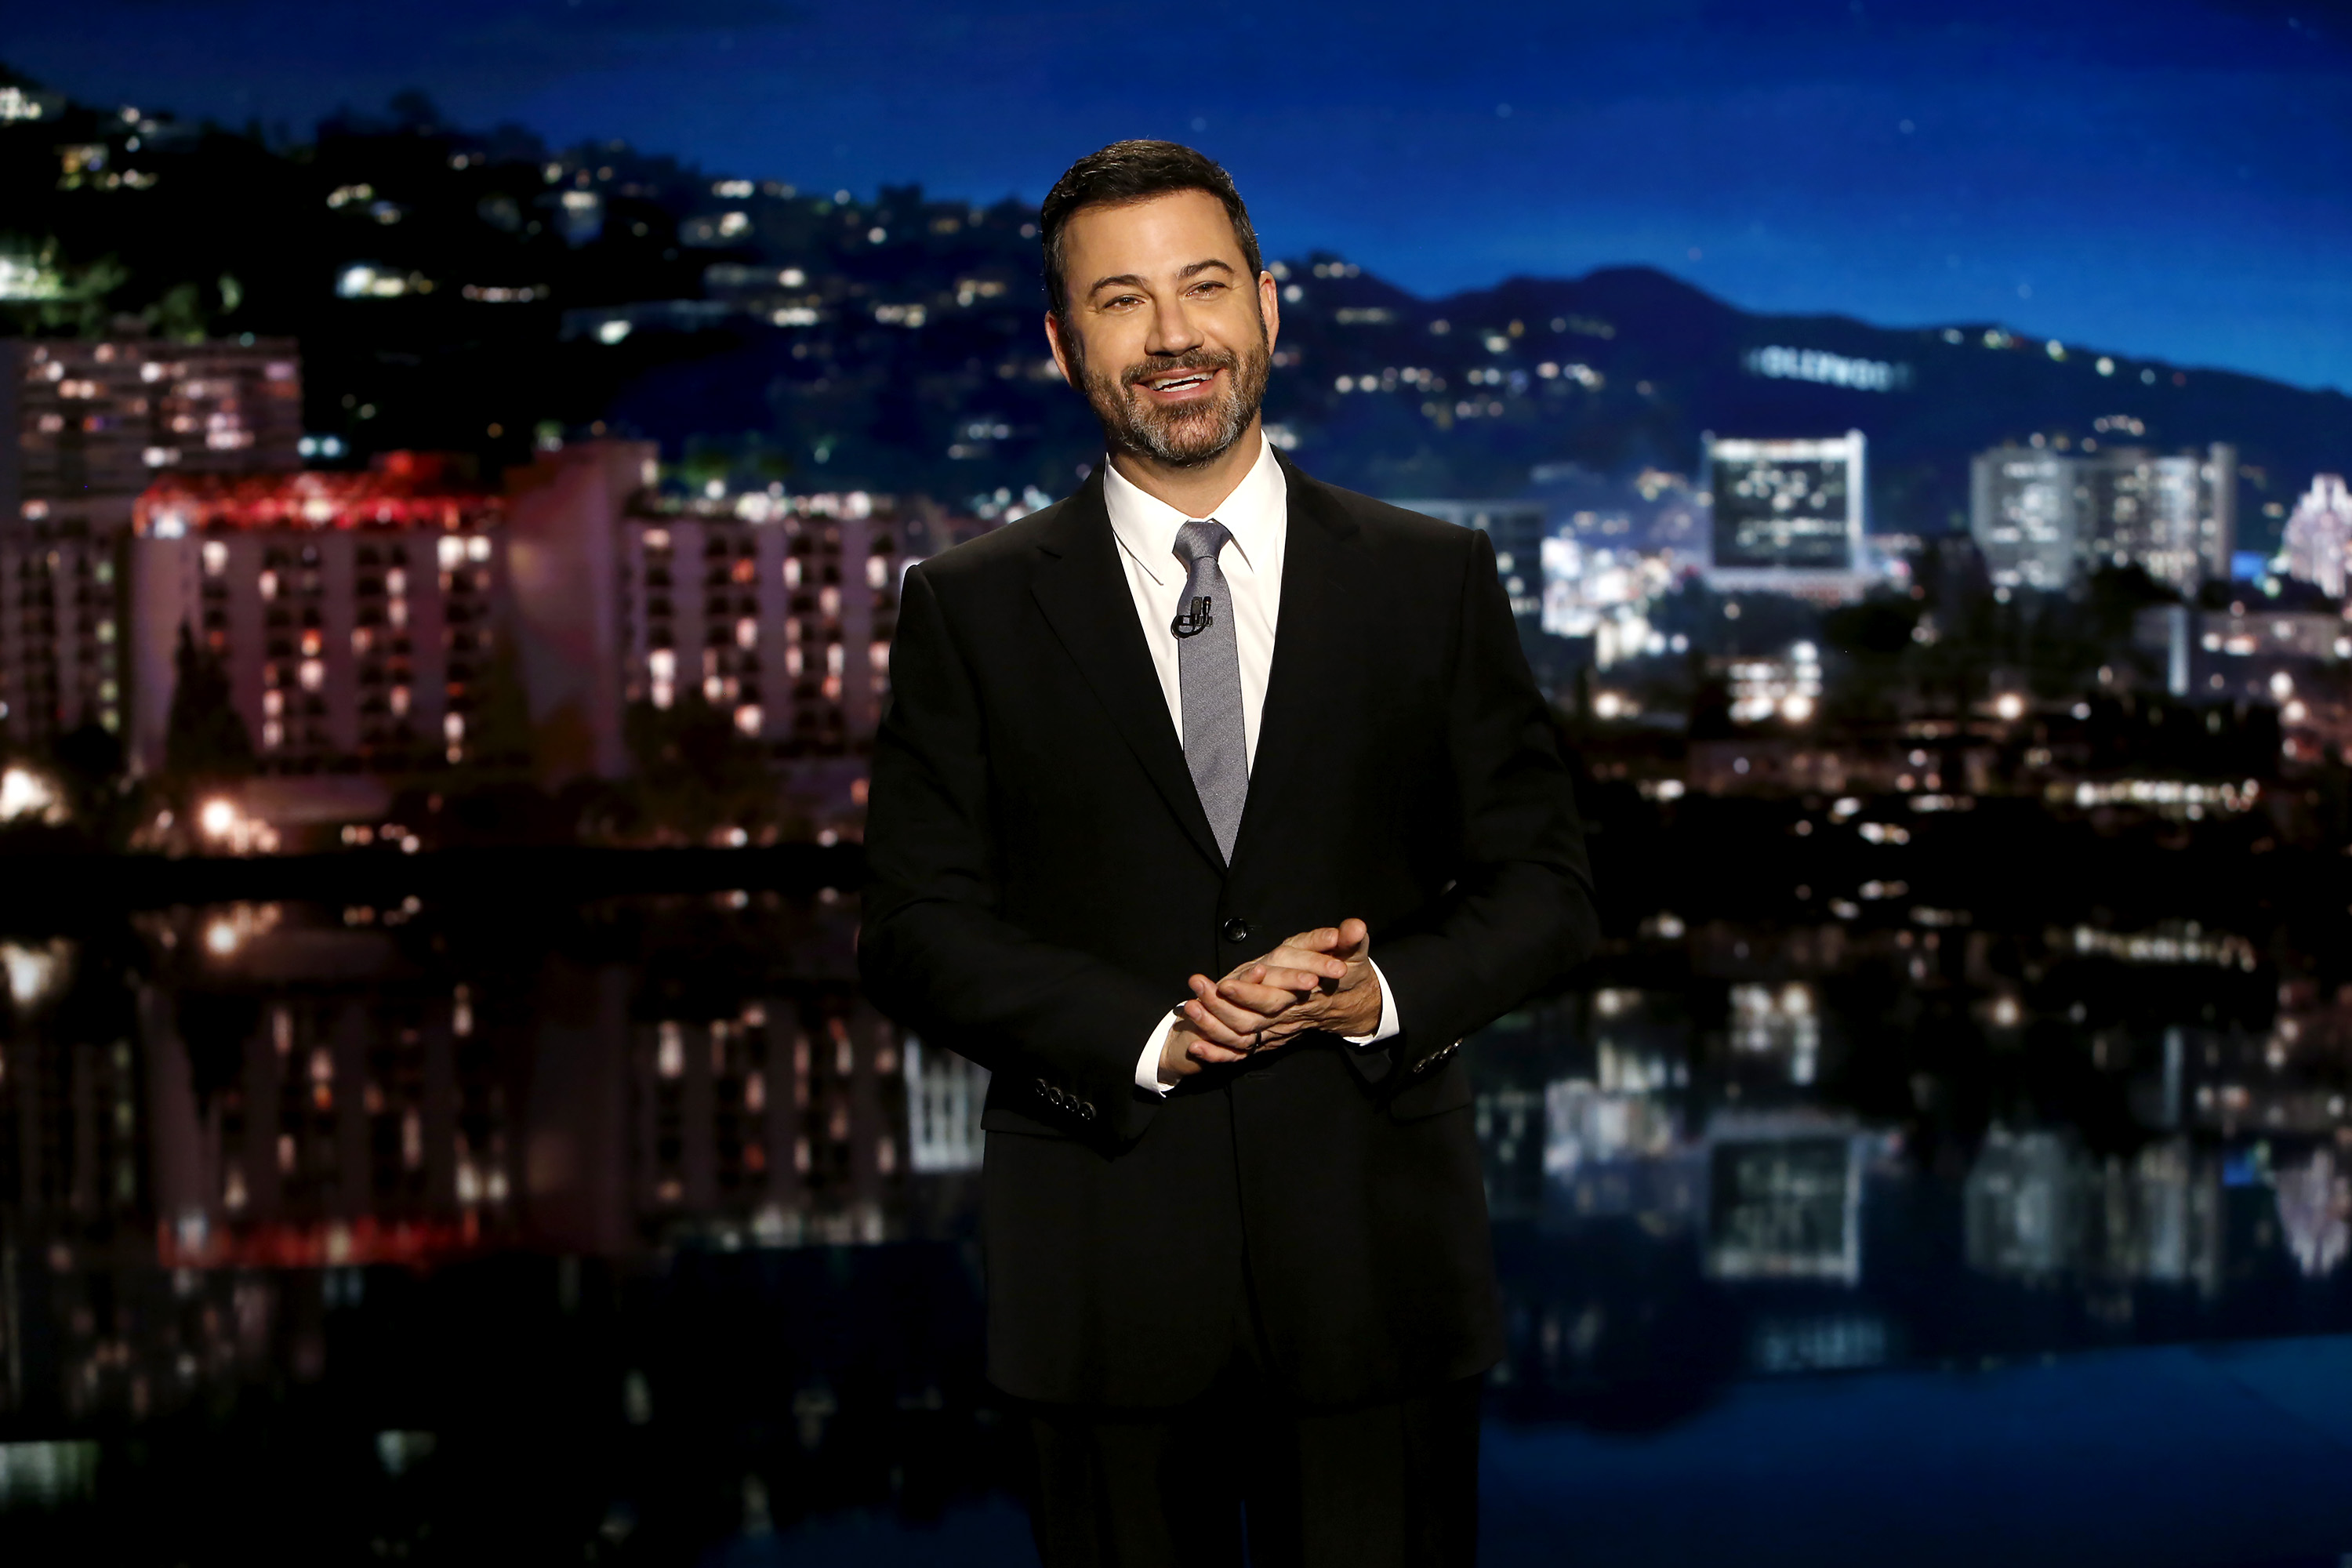 Still from Jimmy Kimmel Live, which airs every weeknight at 11:35 p.m. EST.